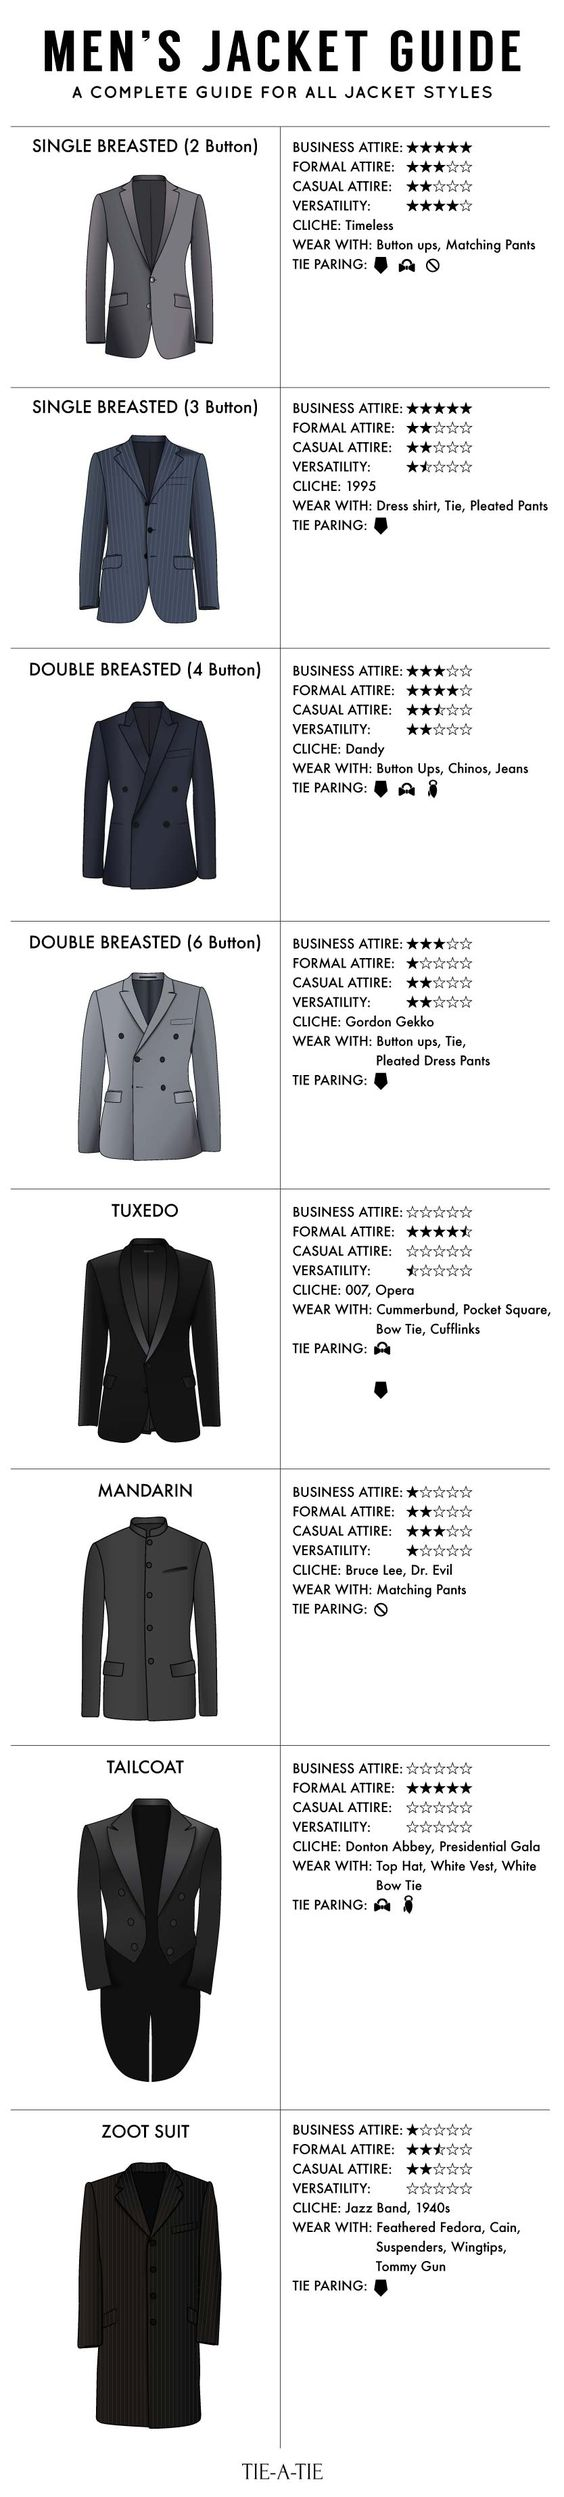 Guide to Mens Suit Jackets                                                                                                                                                                                 More: